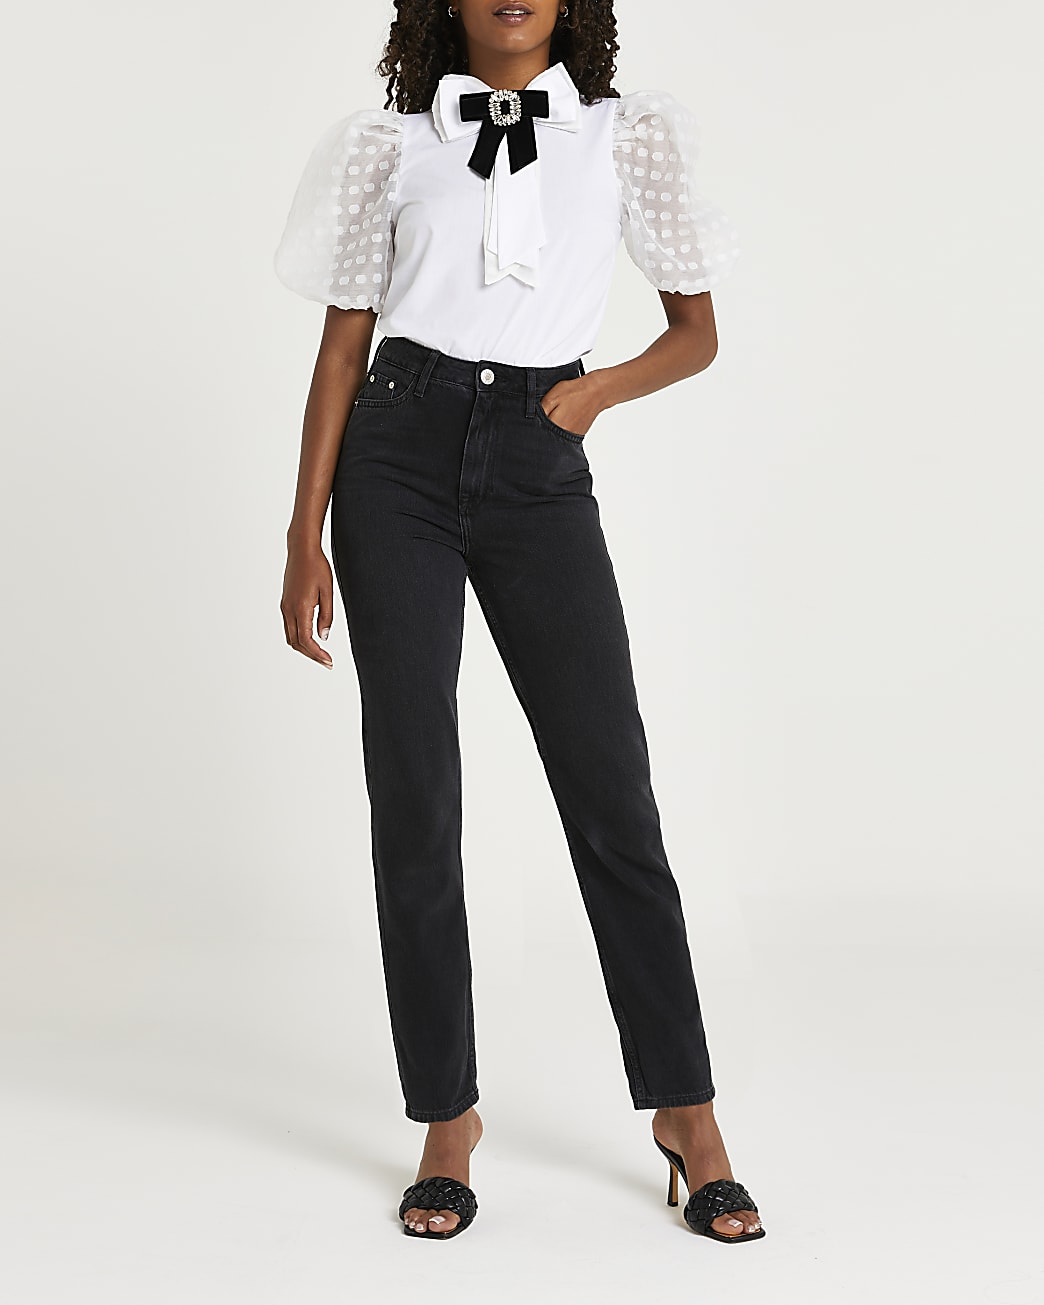 White puff sleeve bow blouse top